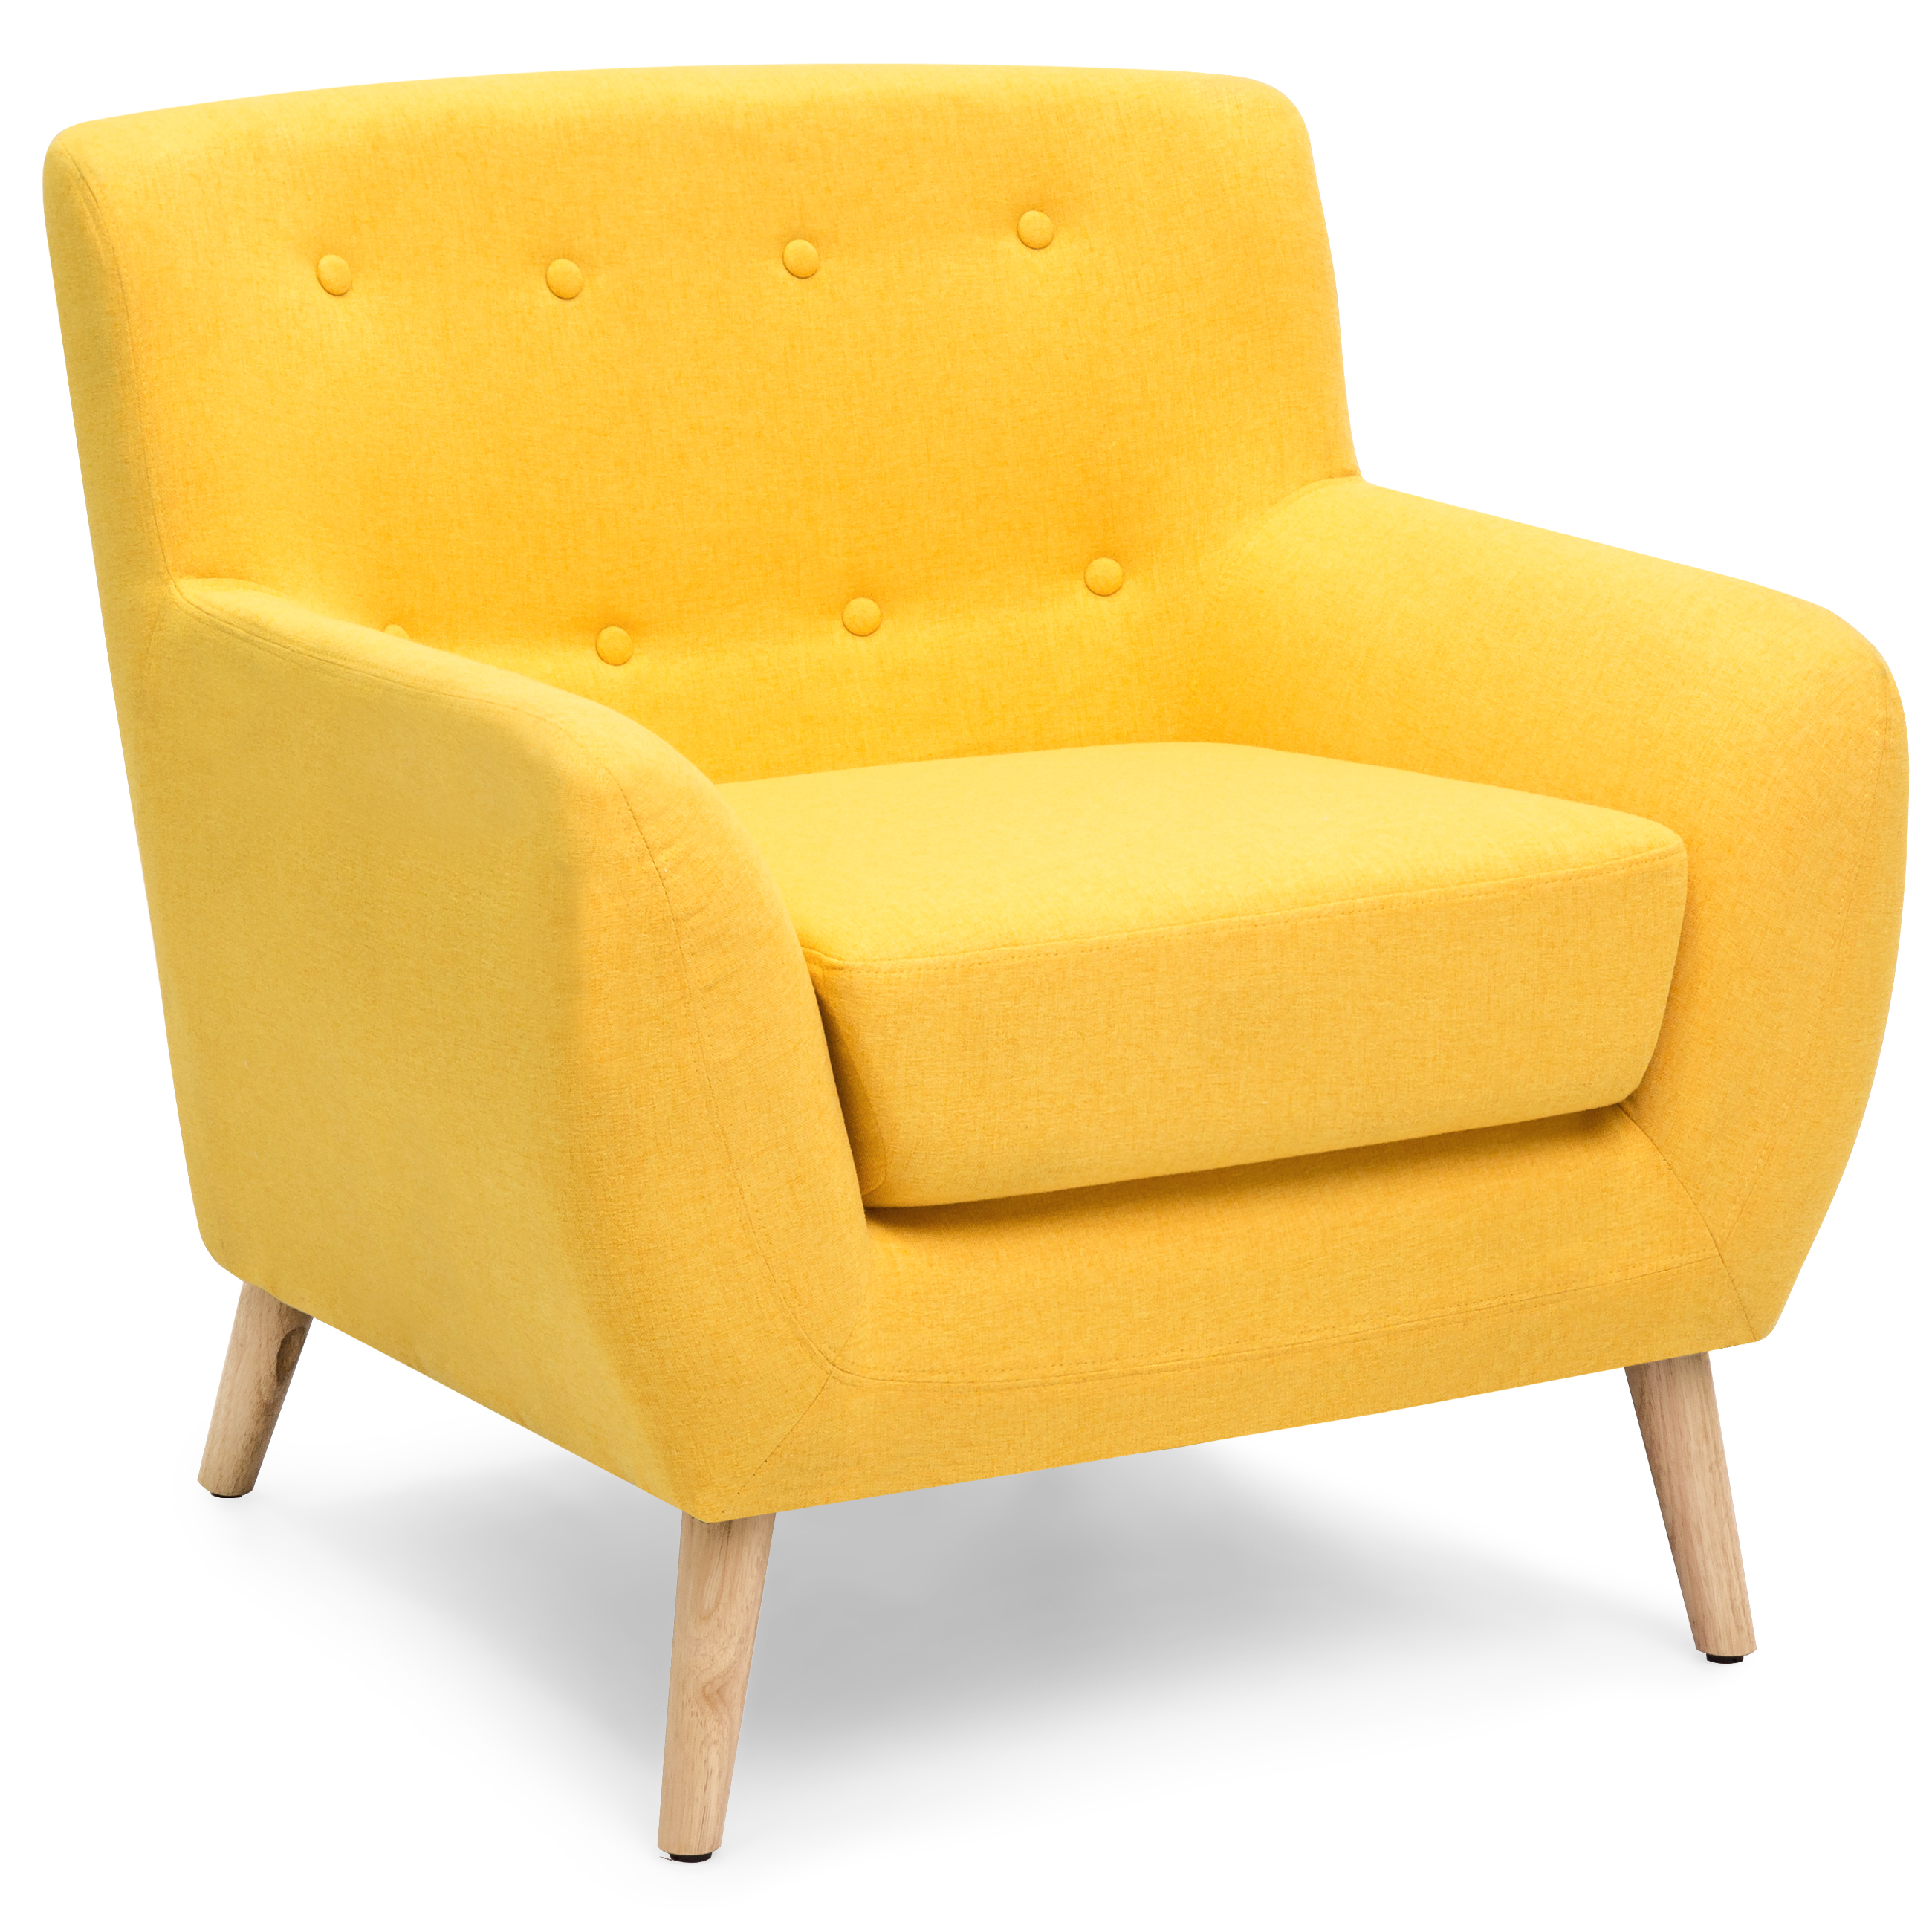 Best Choice Products Mid-Century Modern Upholstered Tufted Accent Chair (Yellow) by Best Choice Products